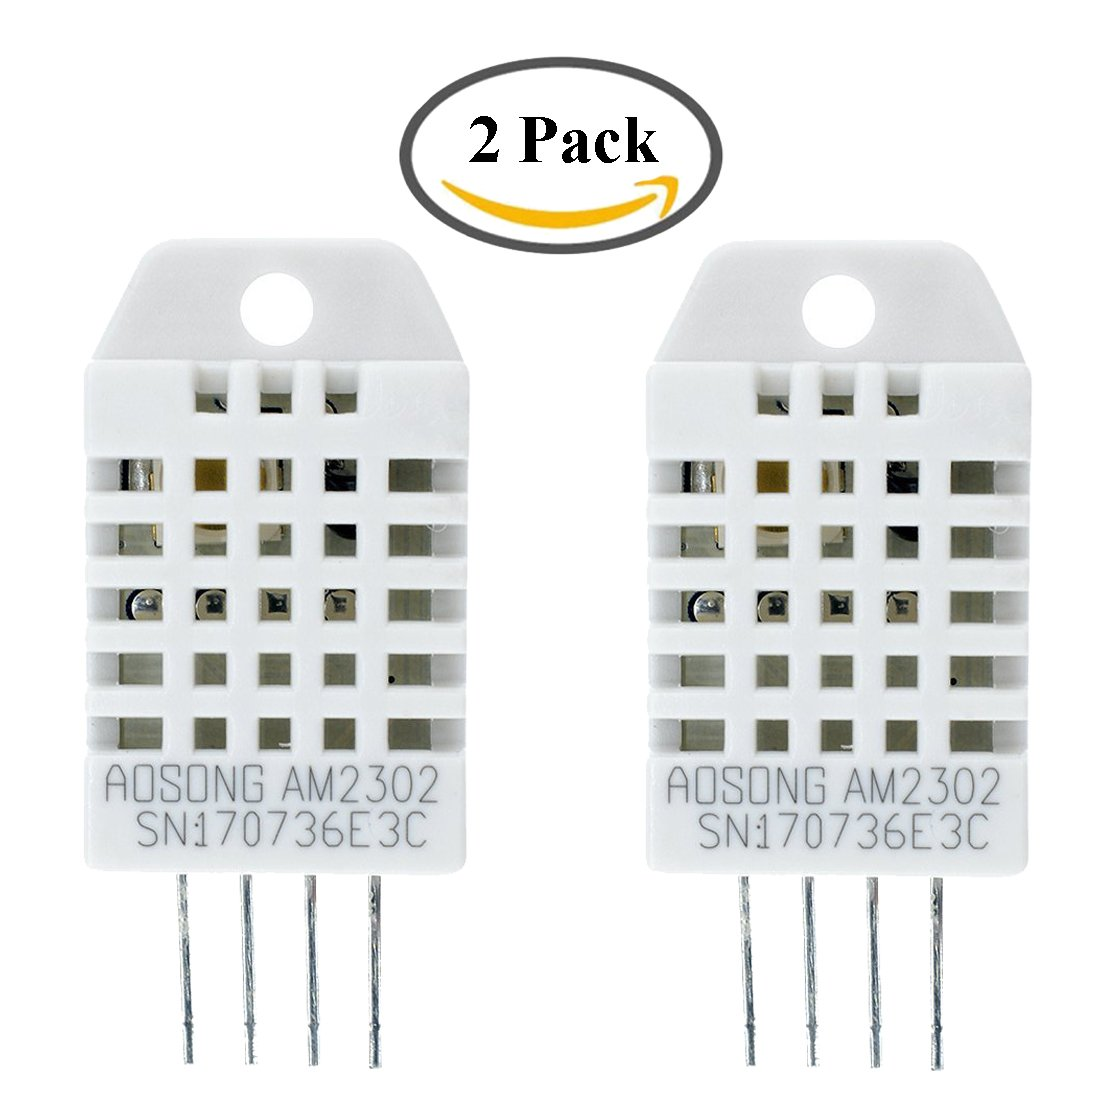 HiLetgo® 2pcs DHT22/AM2302 Digital Temperature and Humidity Sensor Replace SHT11 SHT15